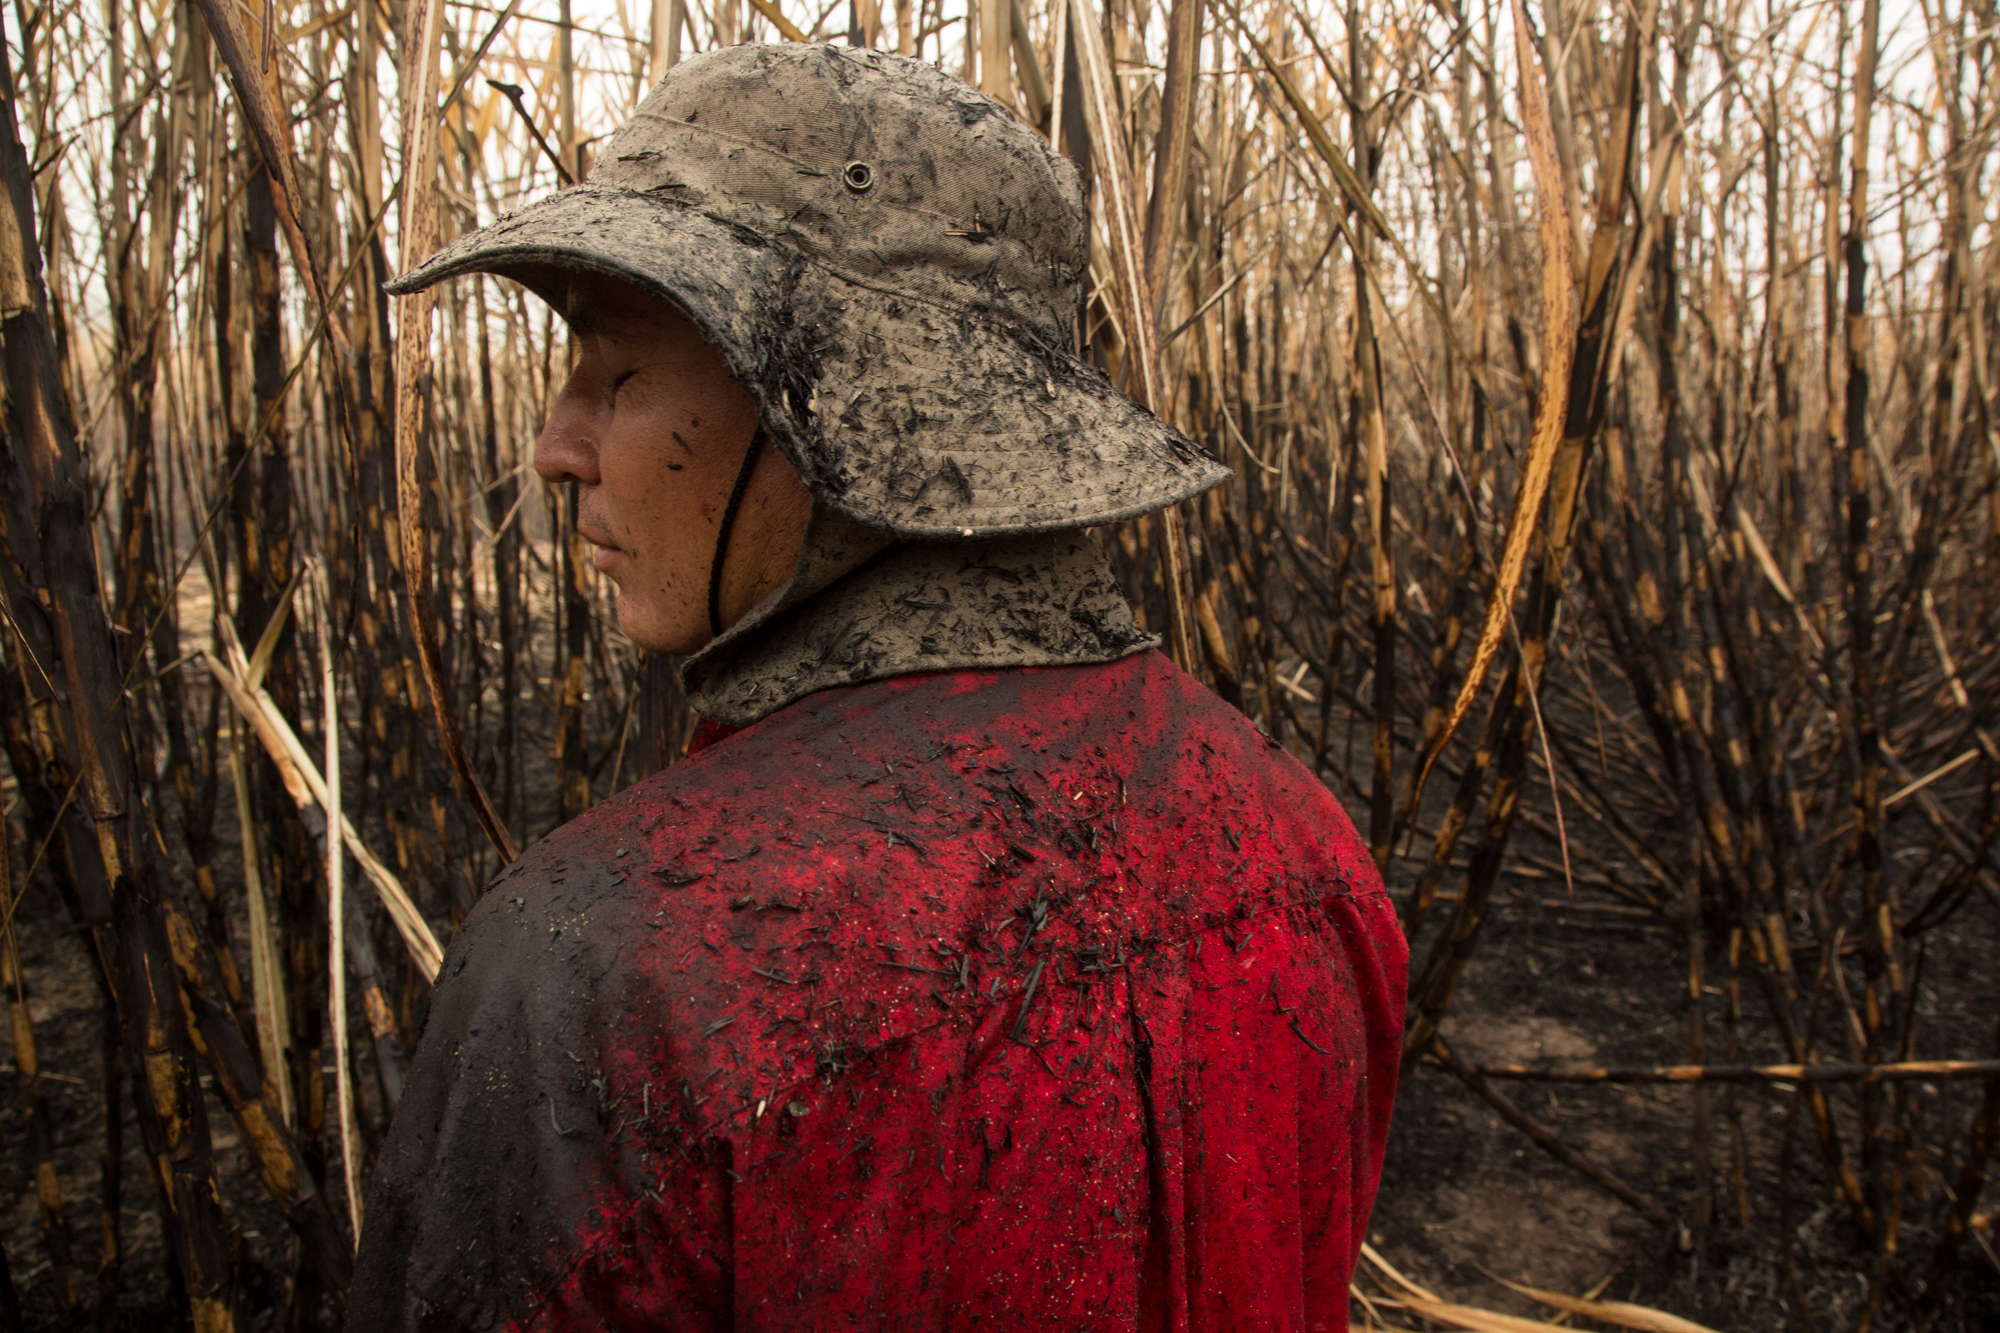 A sugarcane cutter near Los Almendros, El Salvador covered in soot and charred cane one early morning.